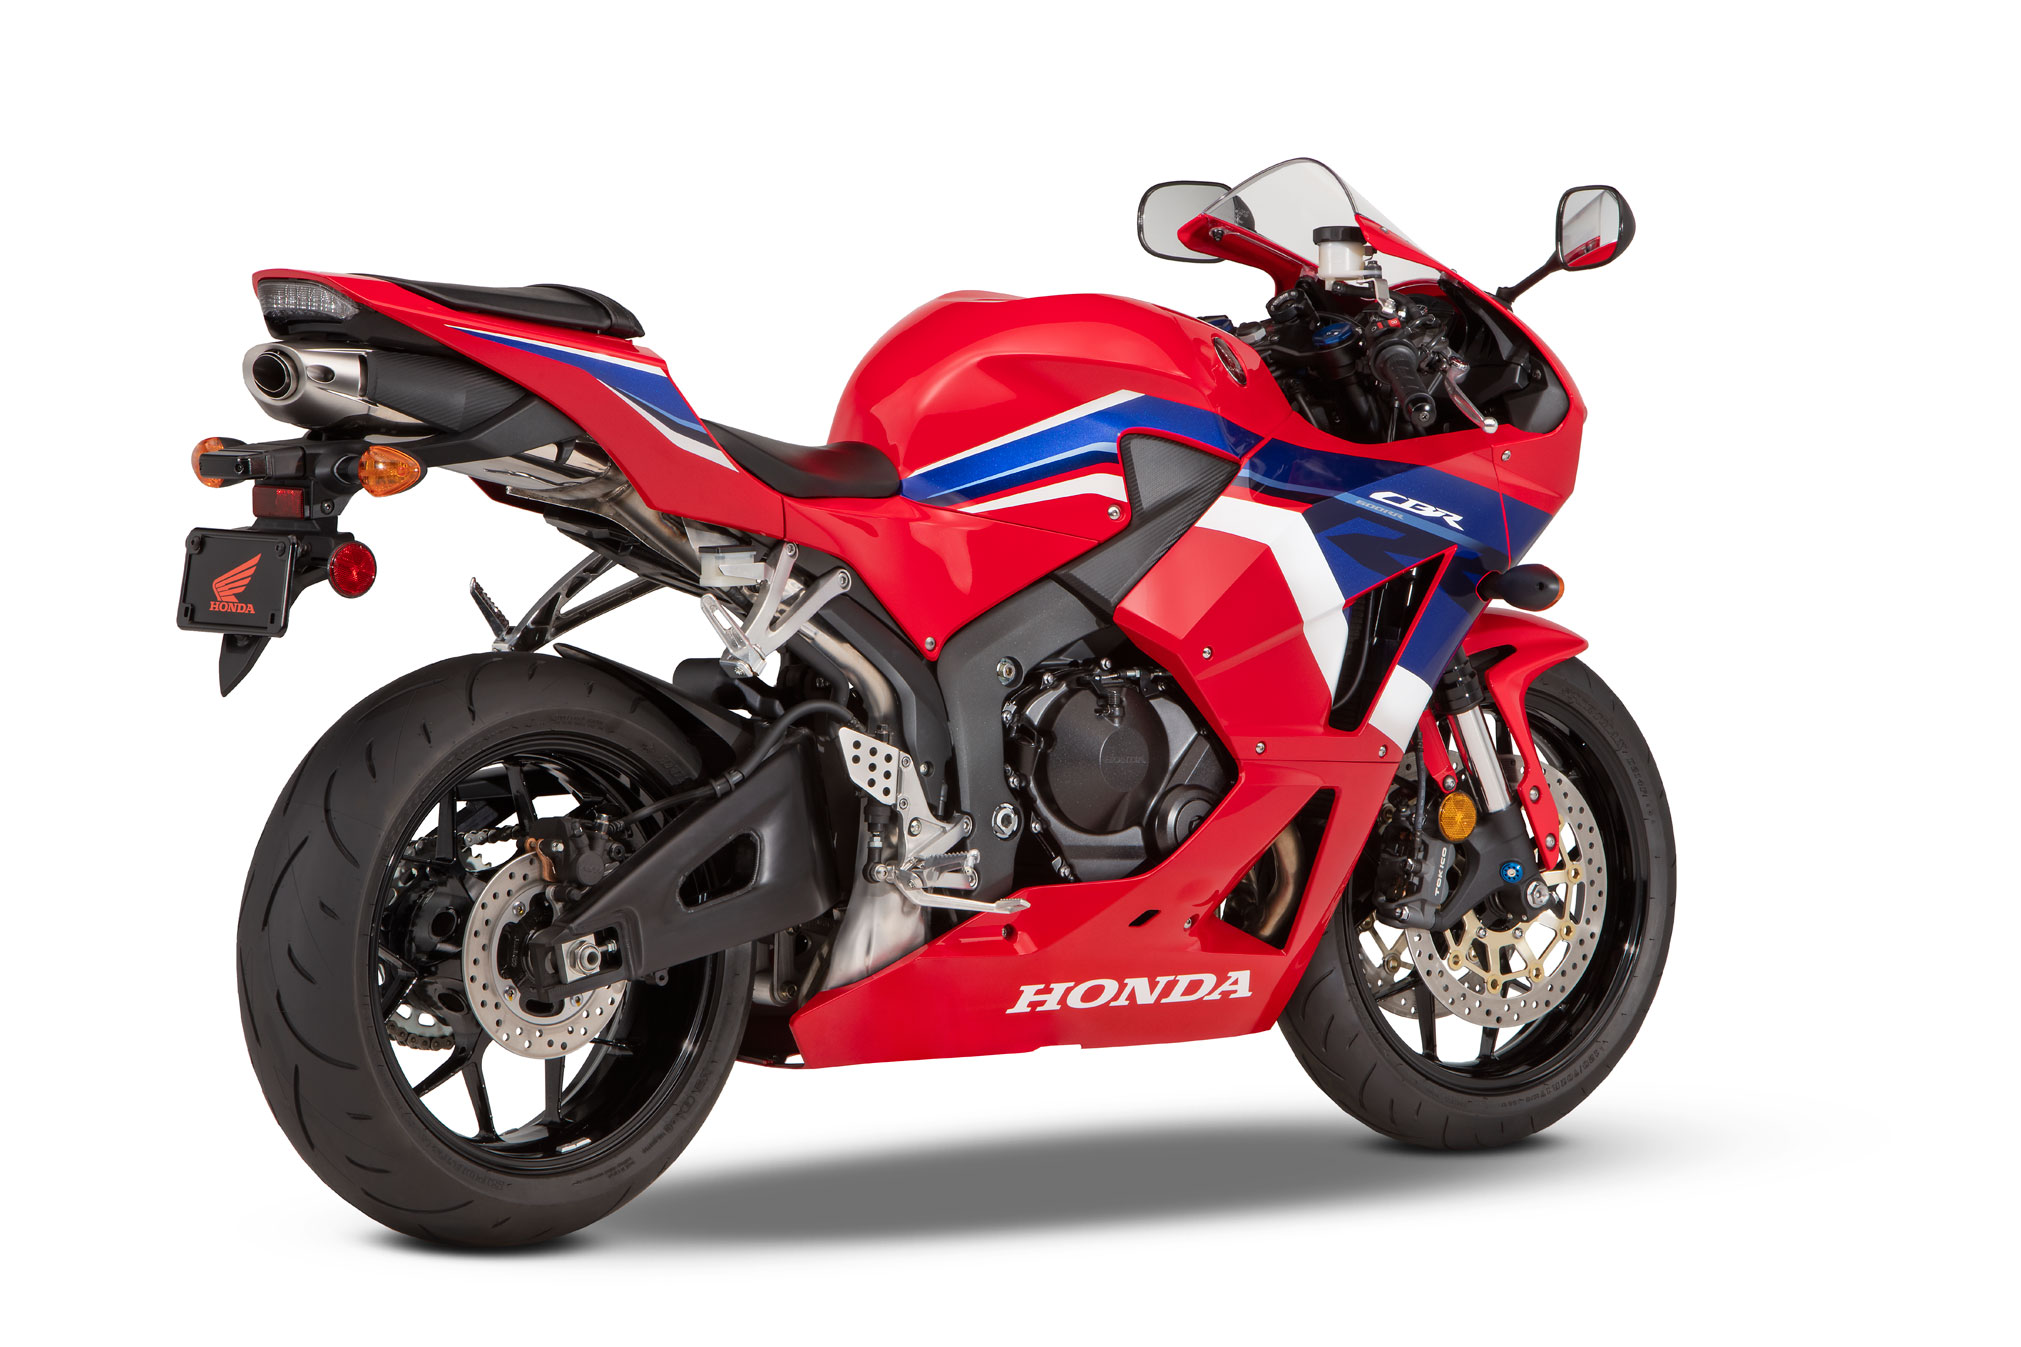 2021 honda cbr600rr abs guide • total motorcycle